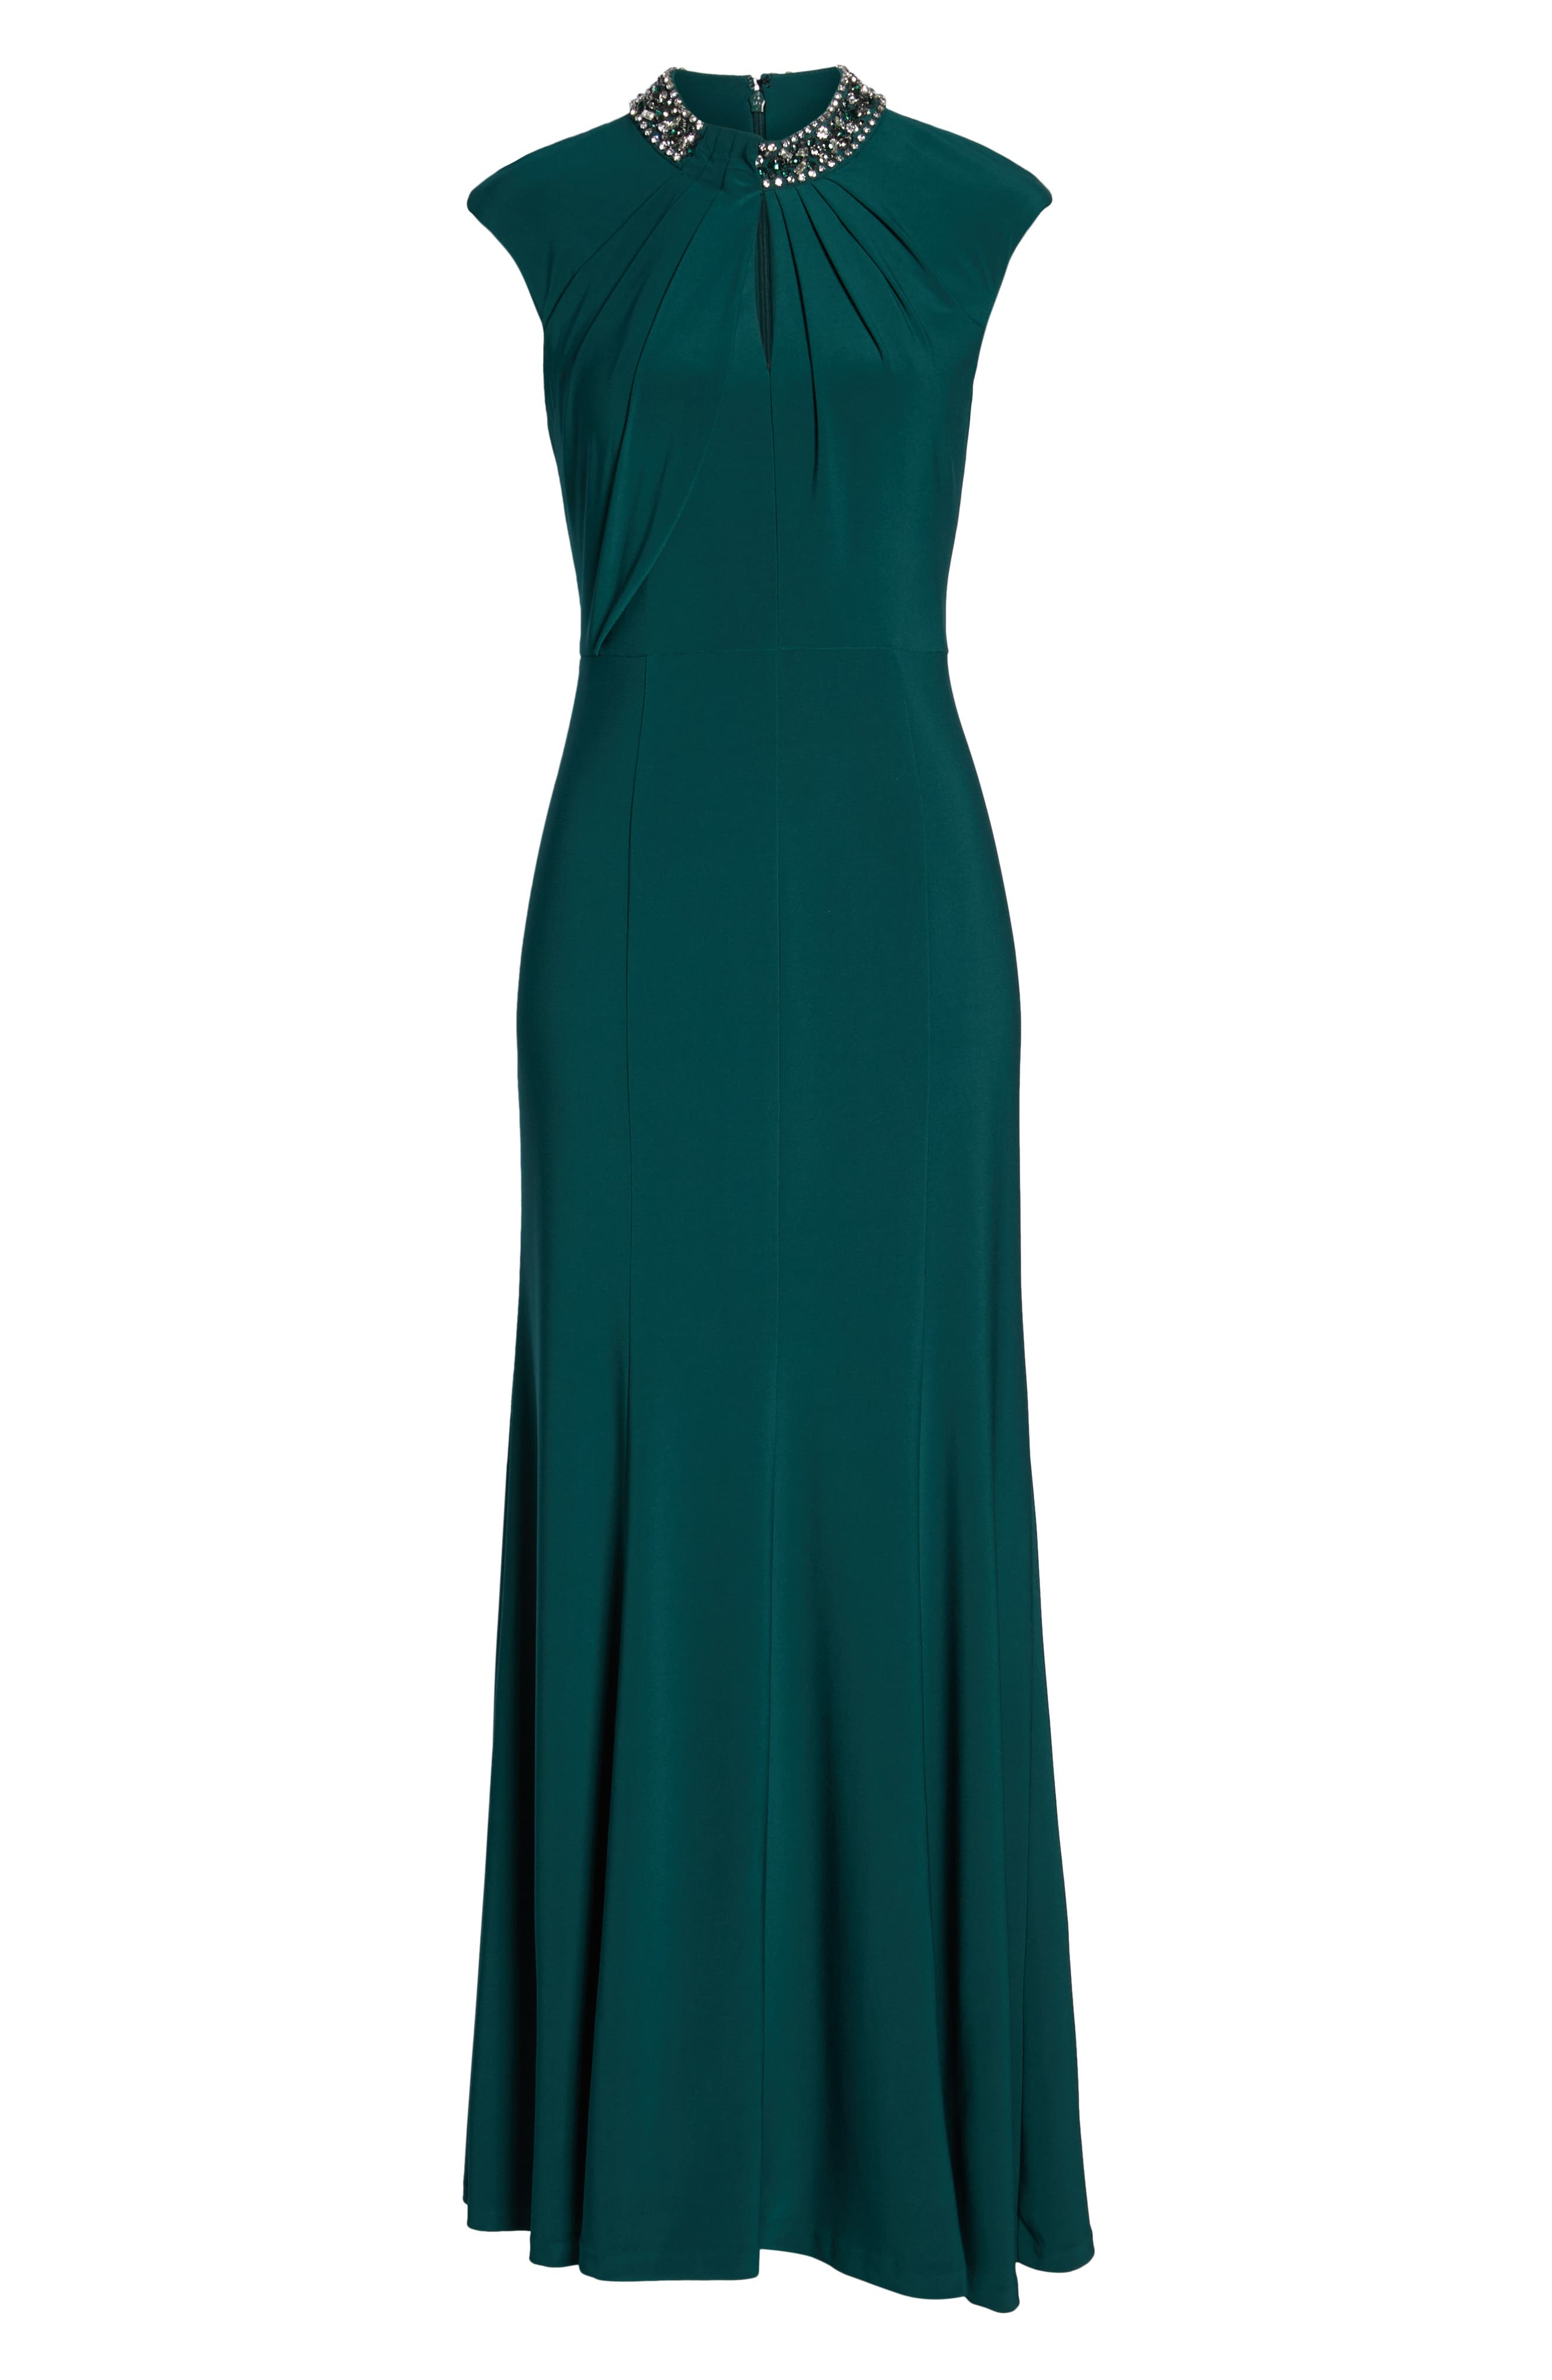 VINCE CAMUTO, Cap Sleeve Gown, Alternate thumbnail 7, color, 301